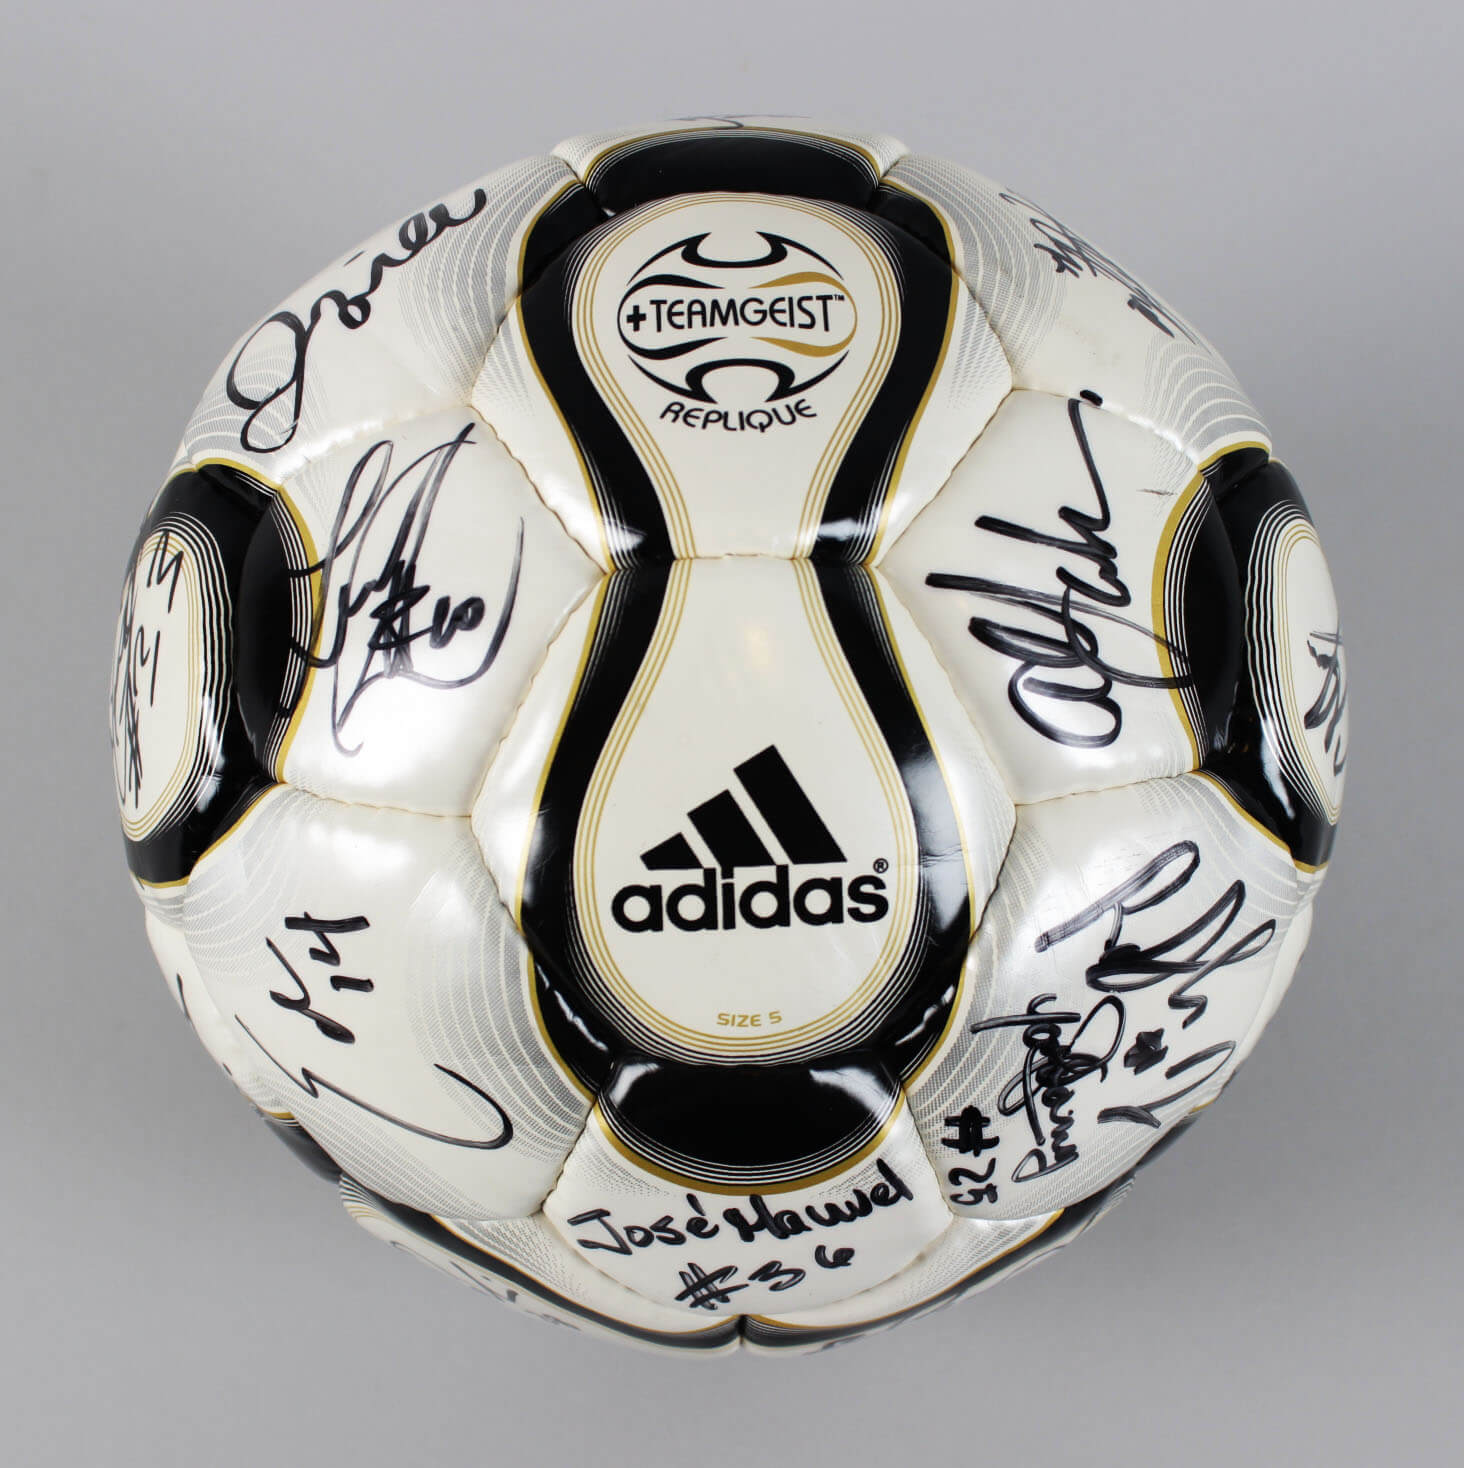 2008 Los Angeles Galaxy Team Signed Soccer Ball – David Beckham, Landon Donovan & Others – JSA61108_01